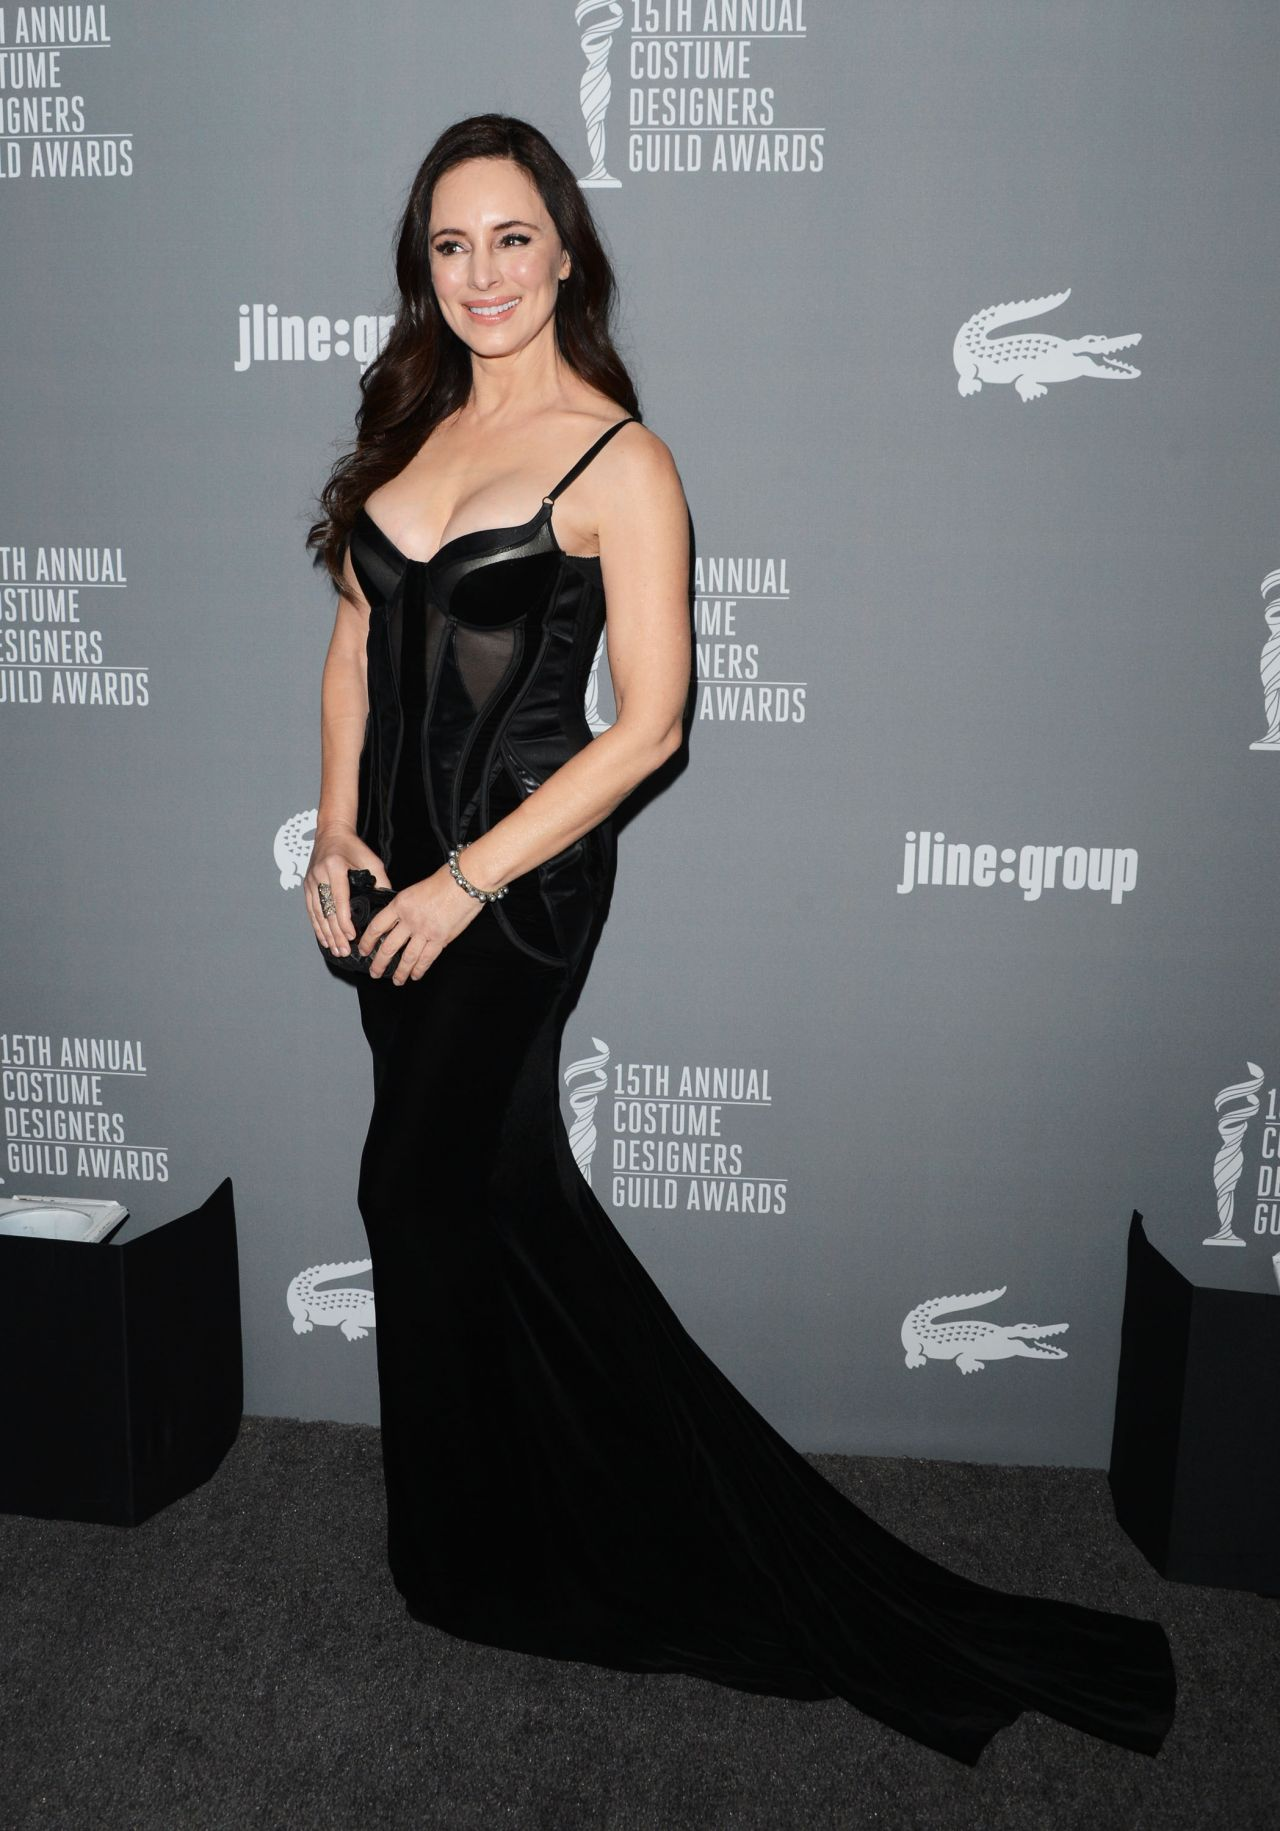 Madeleine Stowe - 15th Annual Costume Designers Guild Awards in Los Angeles